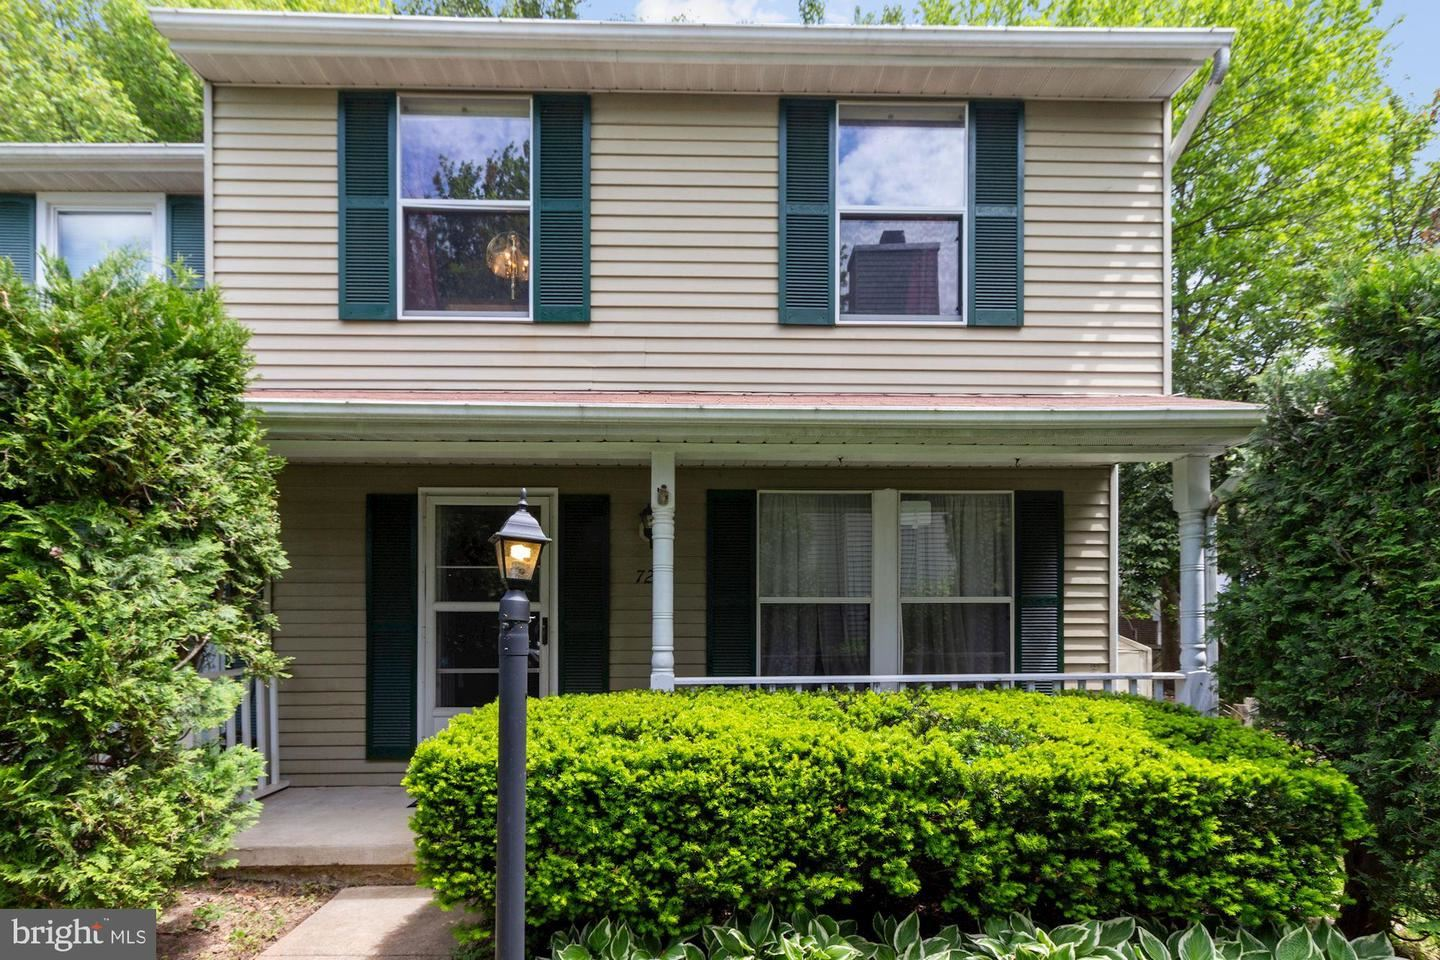 7213 CARVED STONE, Columbia, MD 21045 - MLS#: MDHW293810